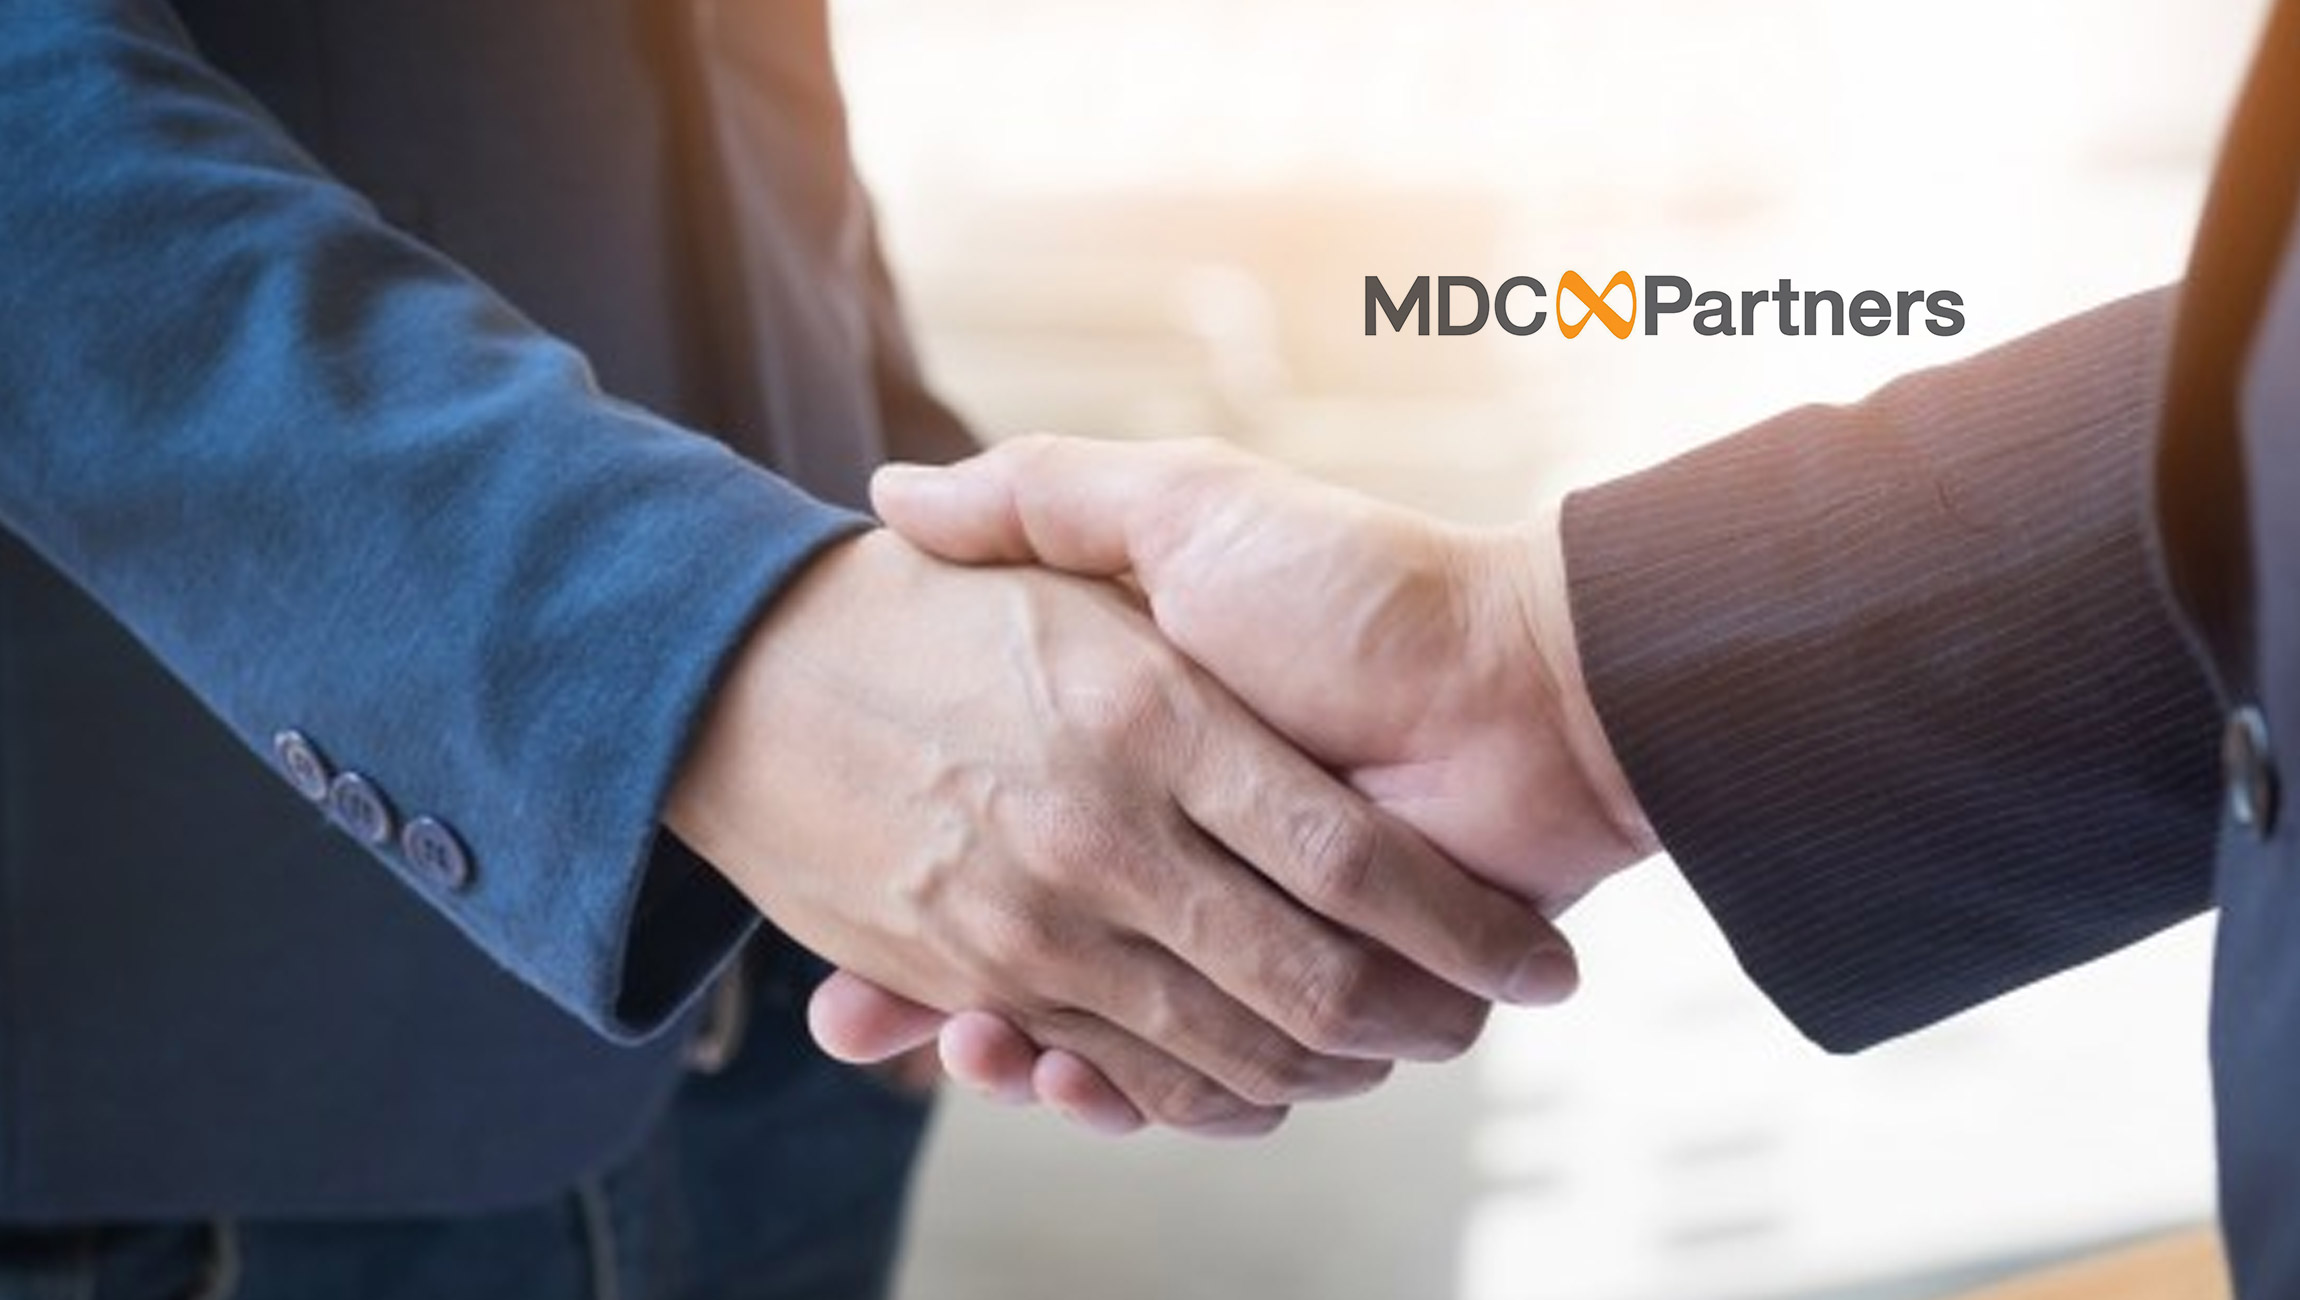 MDC Partners Forms New Network to Unite the Power of Media, Technology and Data